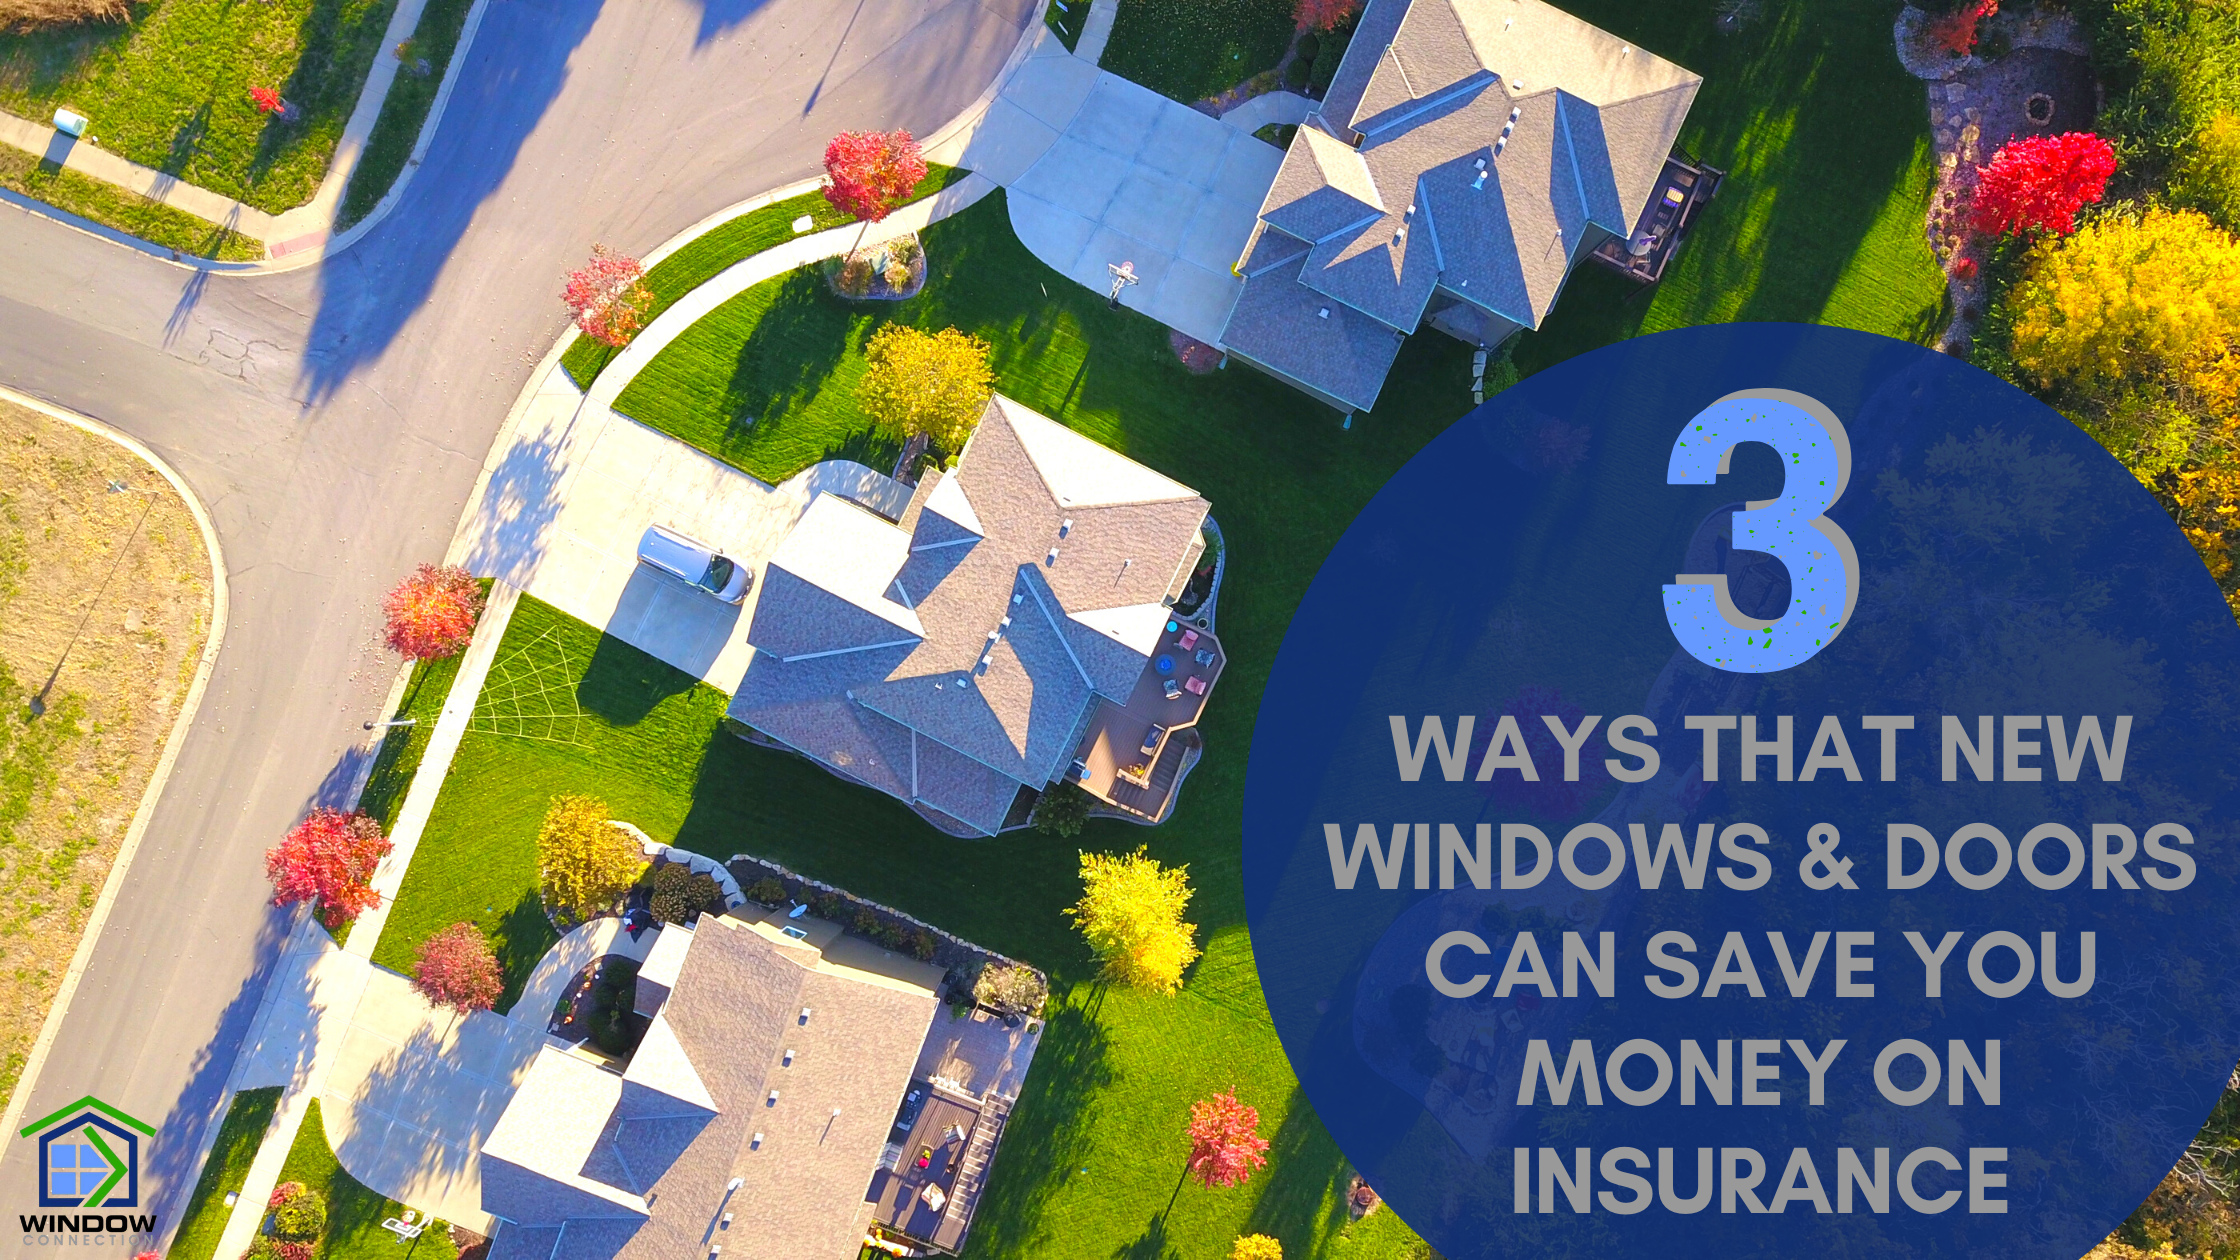 3 ways new windows can save you money on insurance.